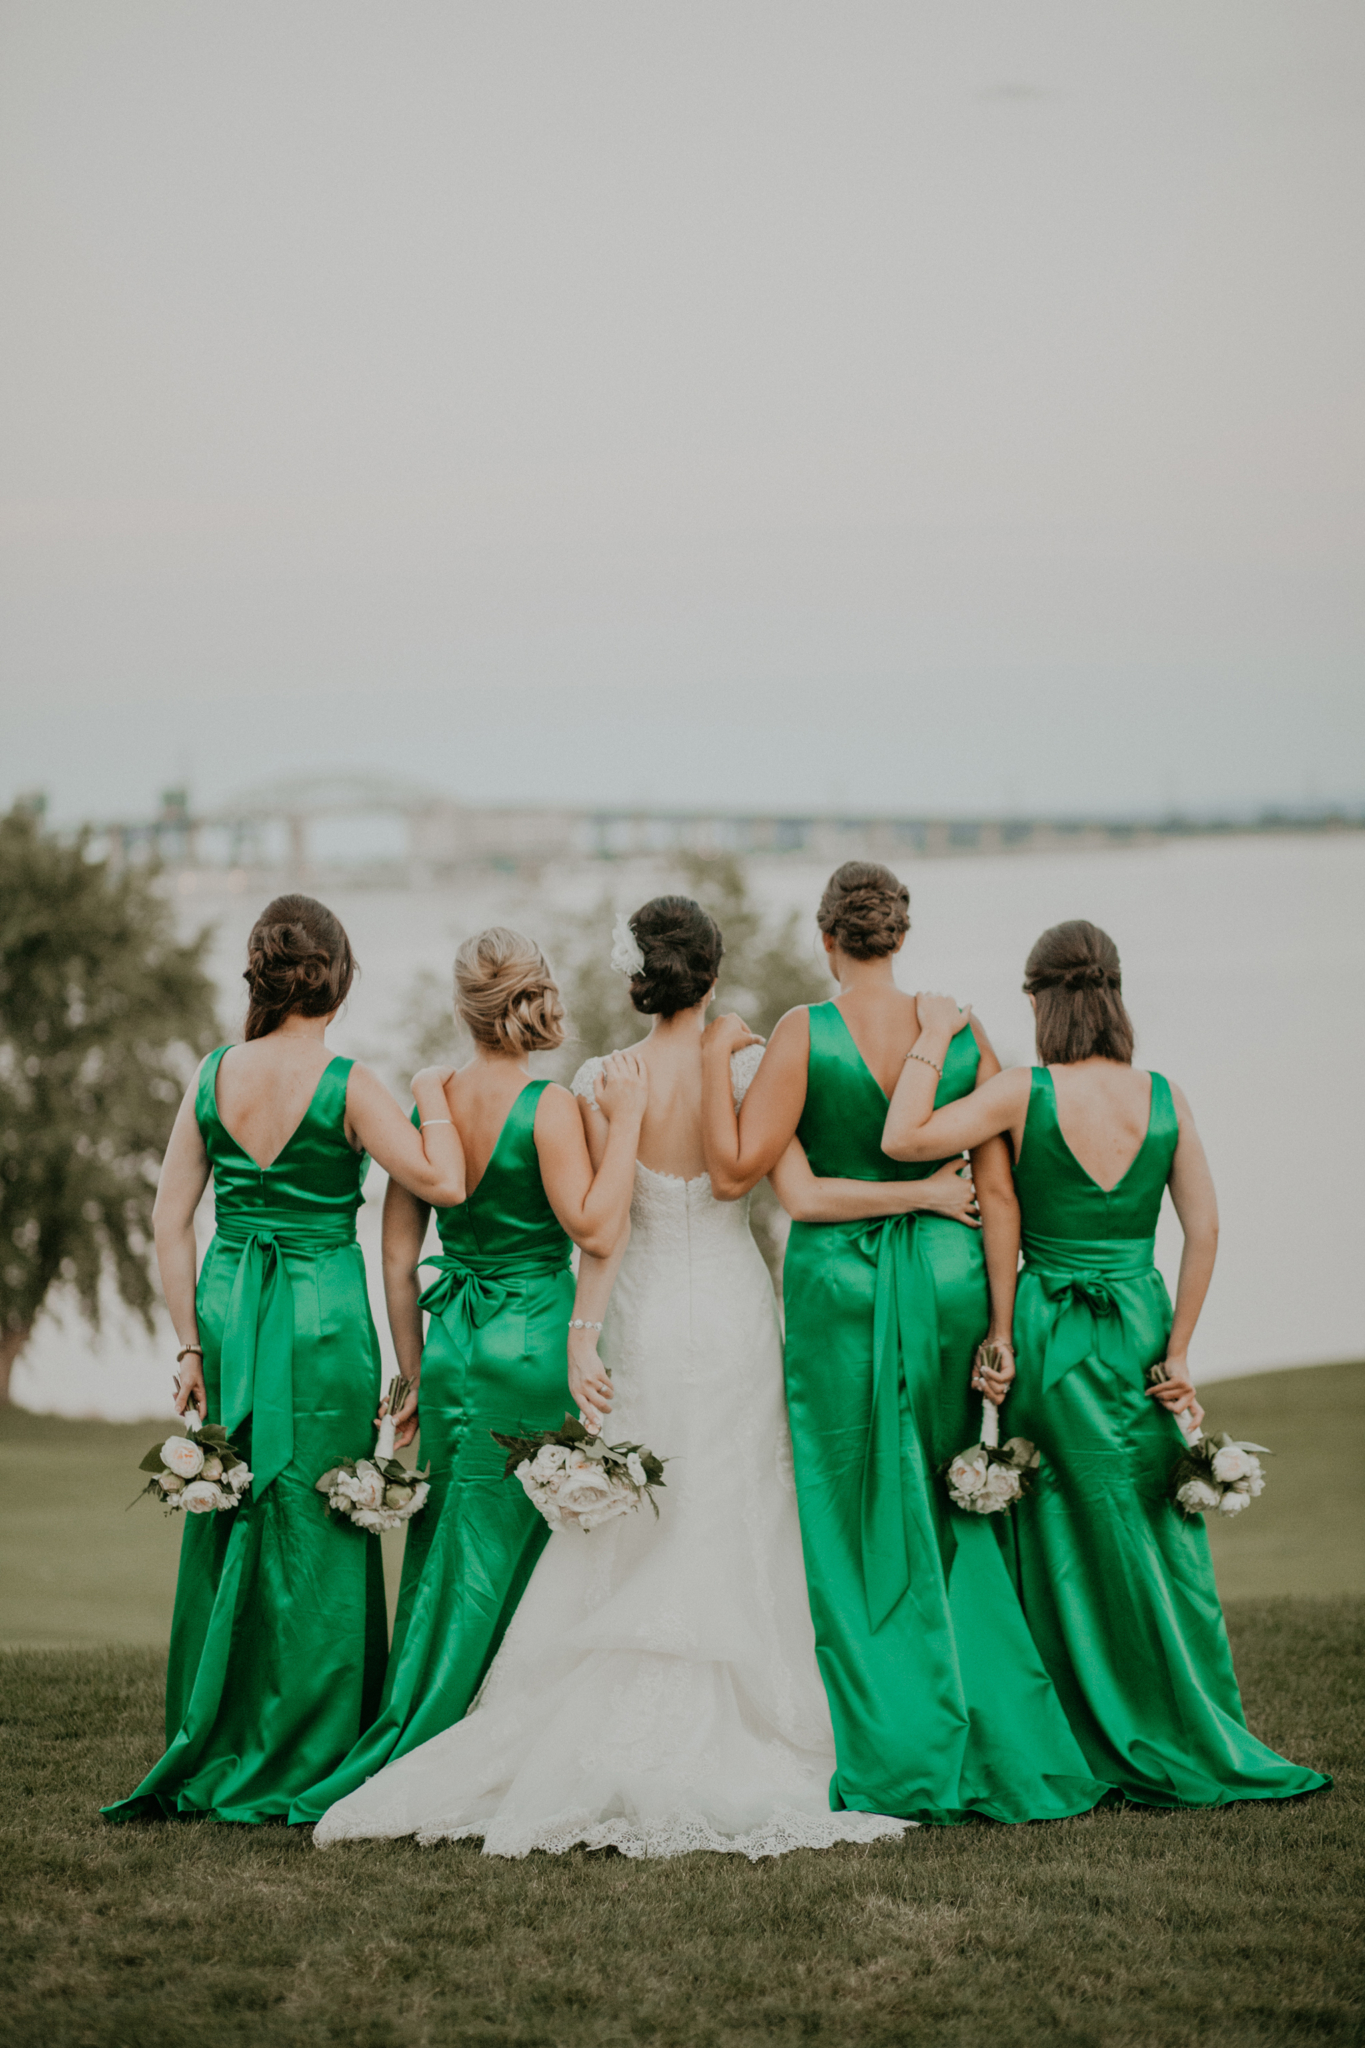 Portrait of bride and bridesmaids in green bridesmaids gowns